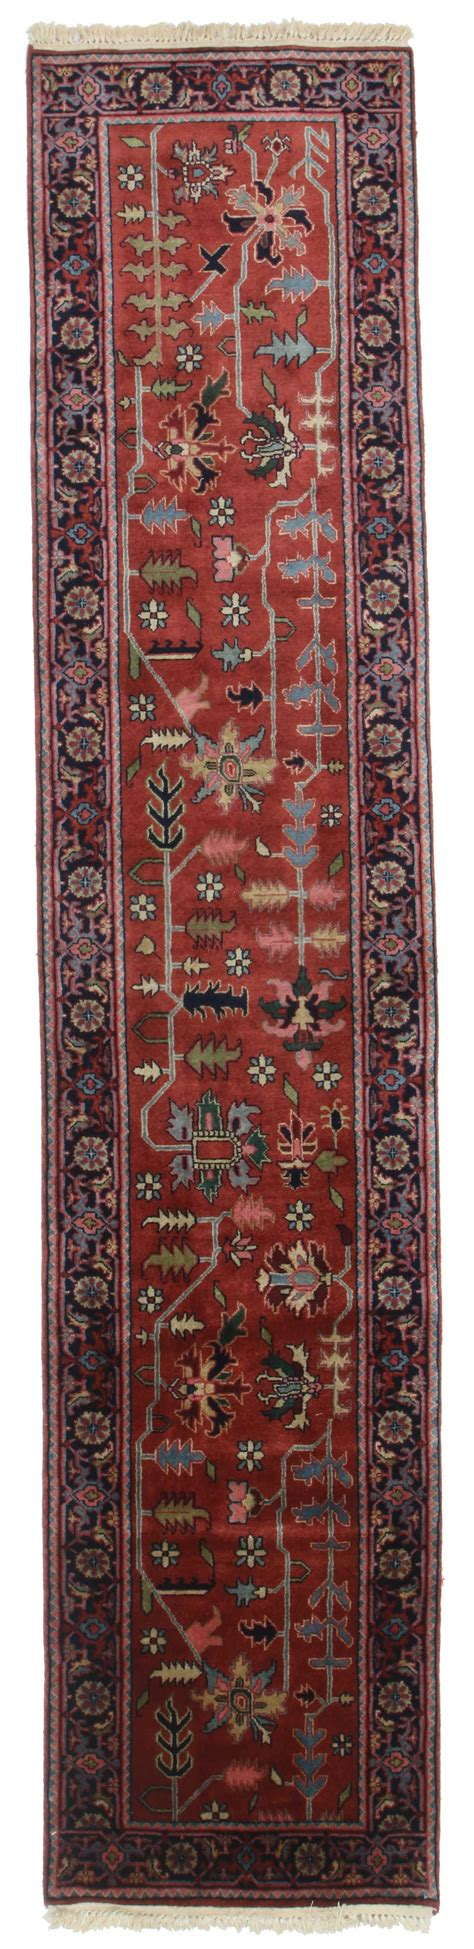 7 x 12 rug 2 7 quot x 12 1 quot vintage style runner 9995 exclusive rugs